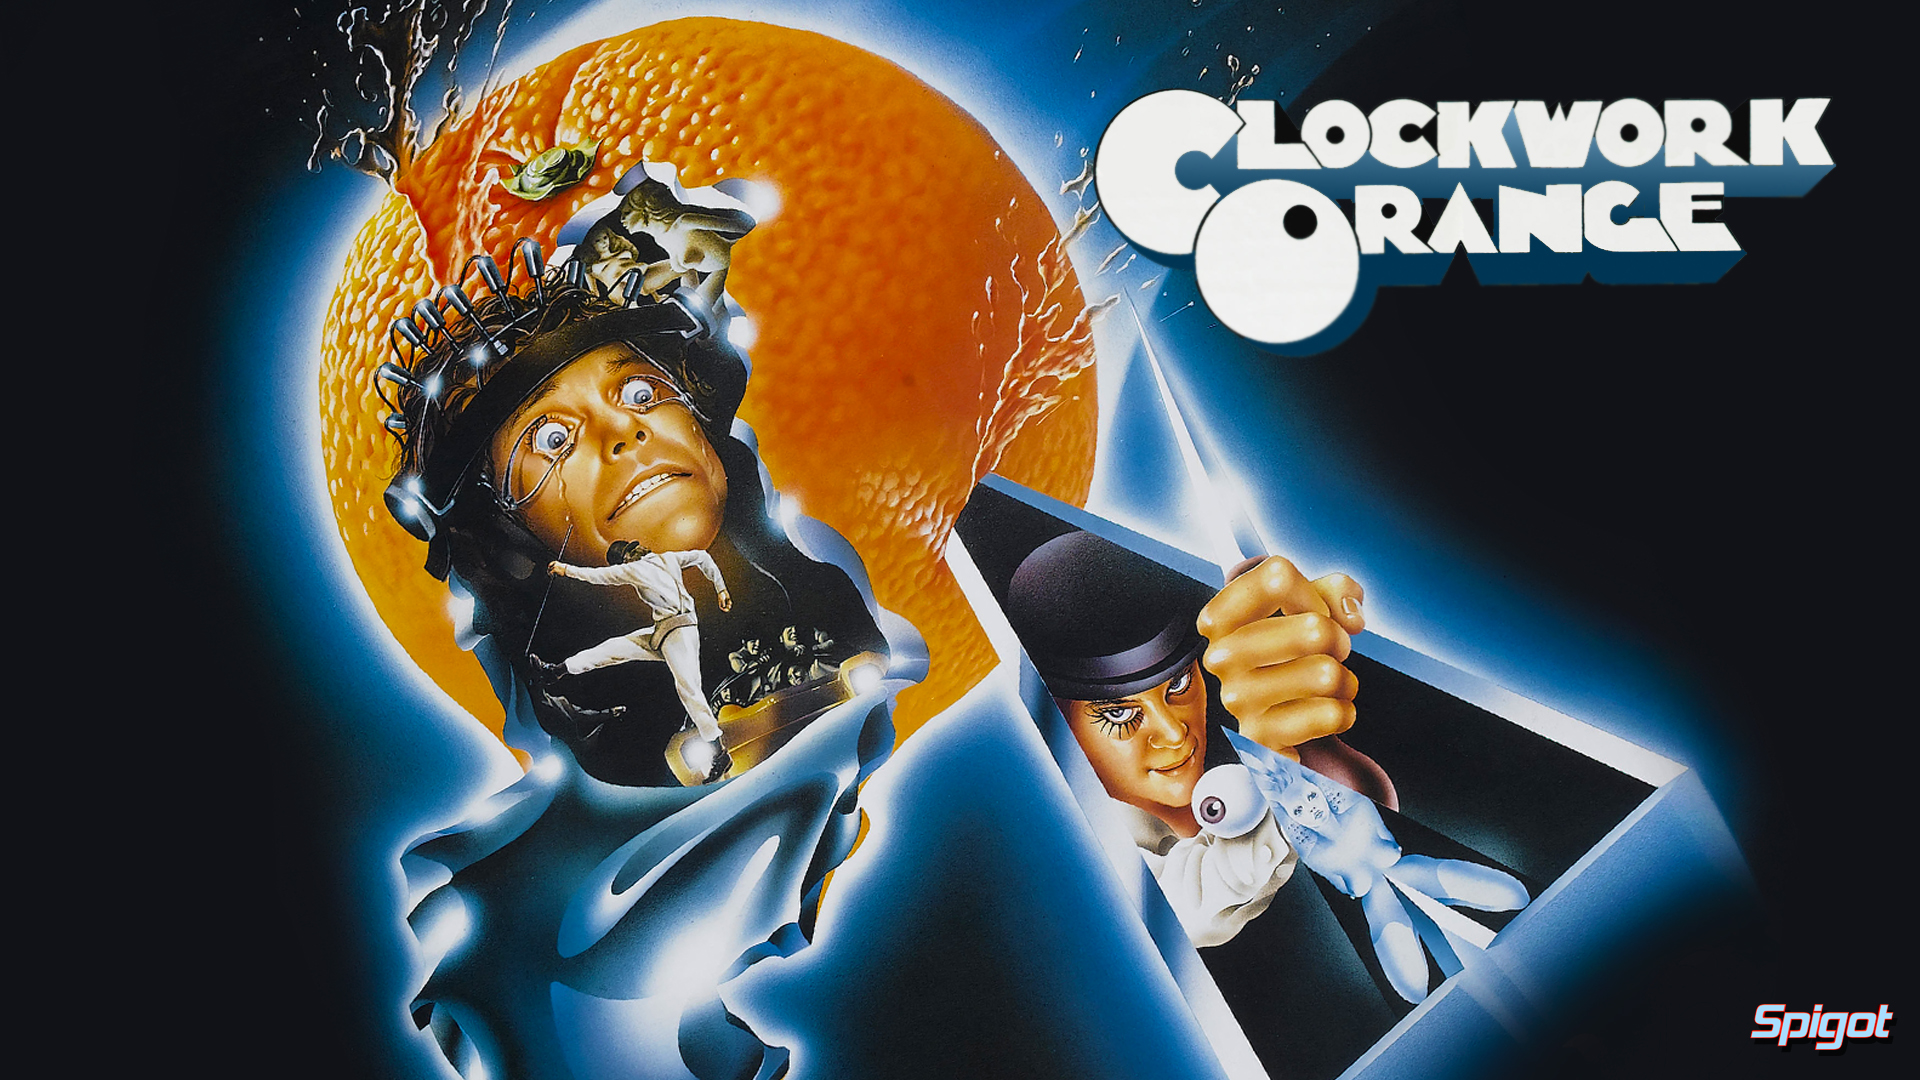 Stanley Kubrick | George Spigot's Blog A Clockwork Orange Wallpaper 1920x1080